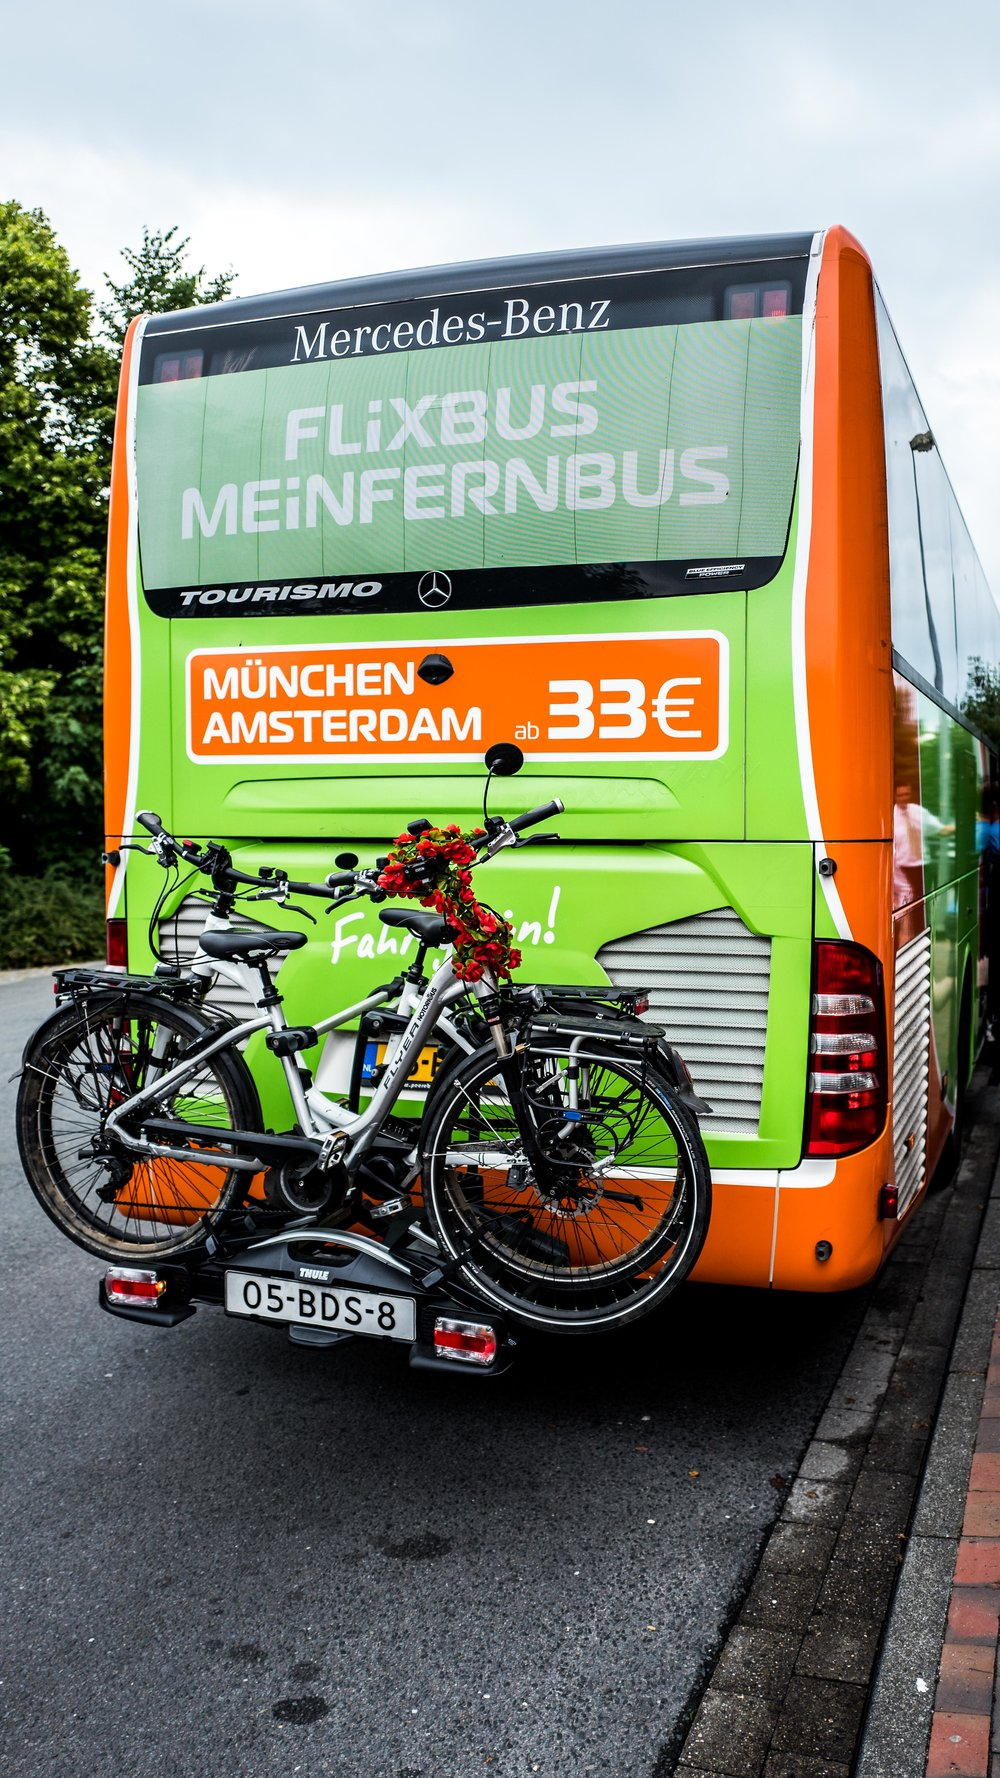 From the Netherlands to Germany, our bikes survived pretty well behind this bus for like 20 hours.